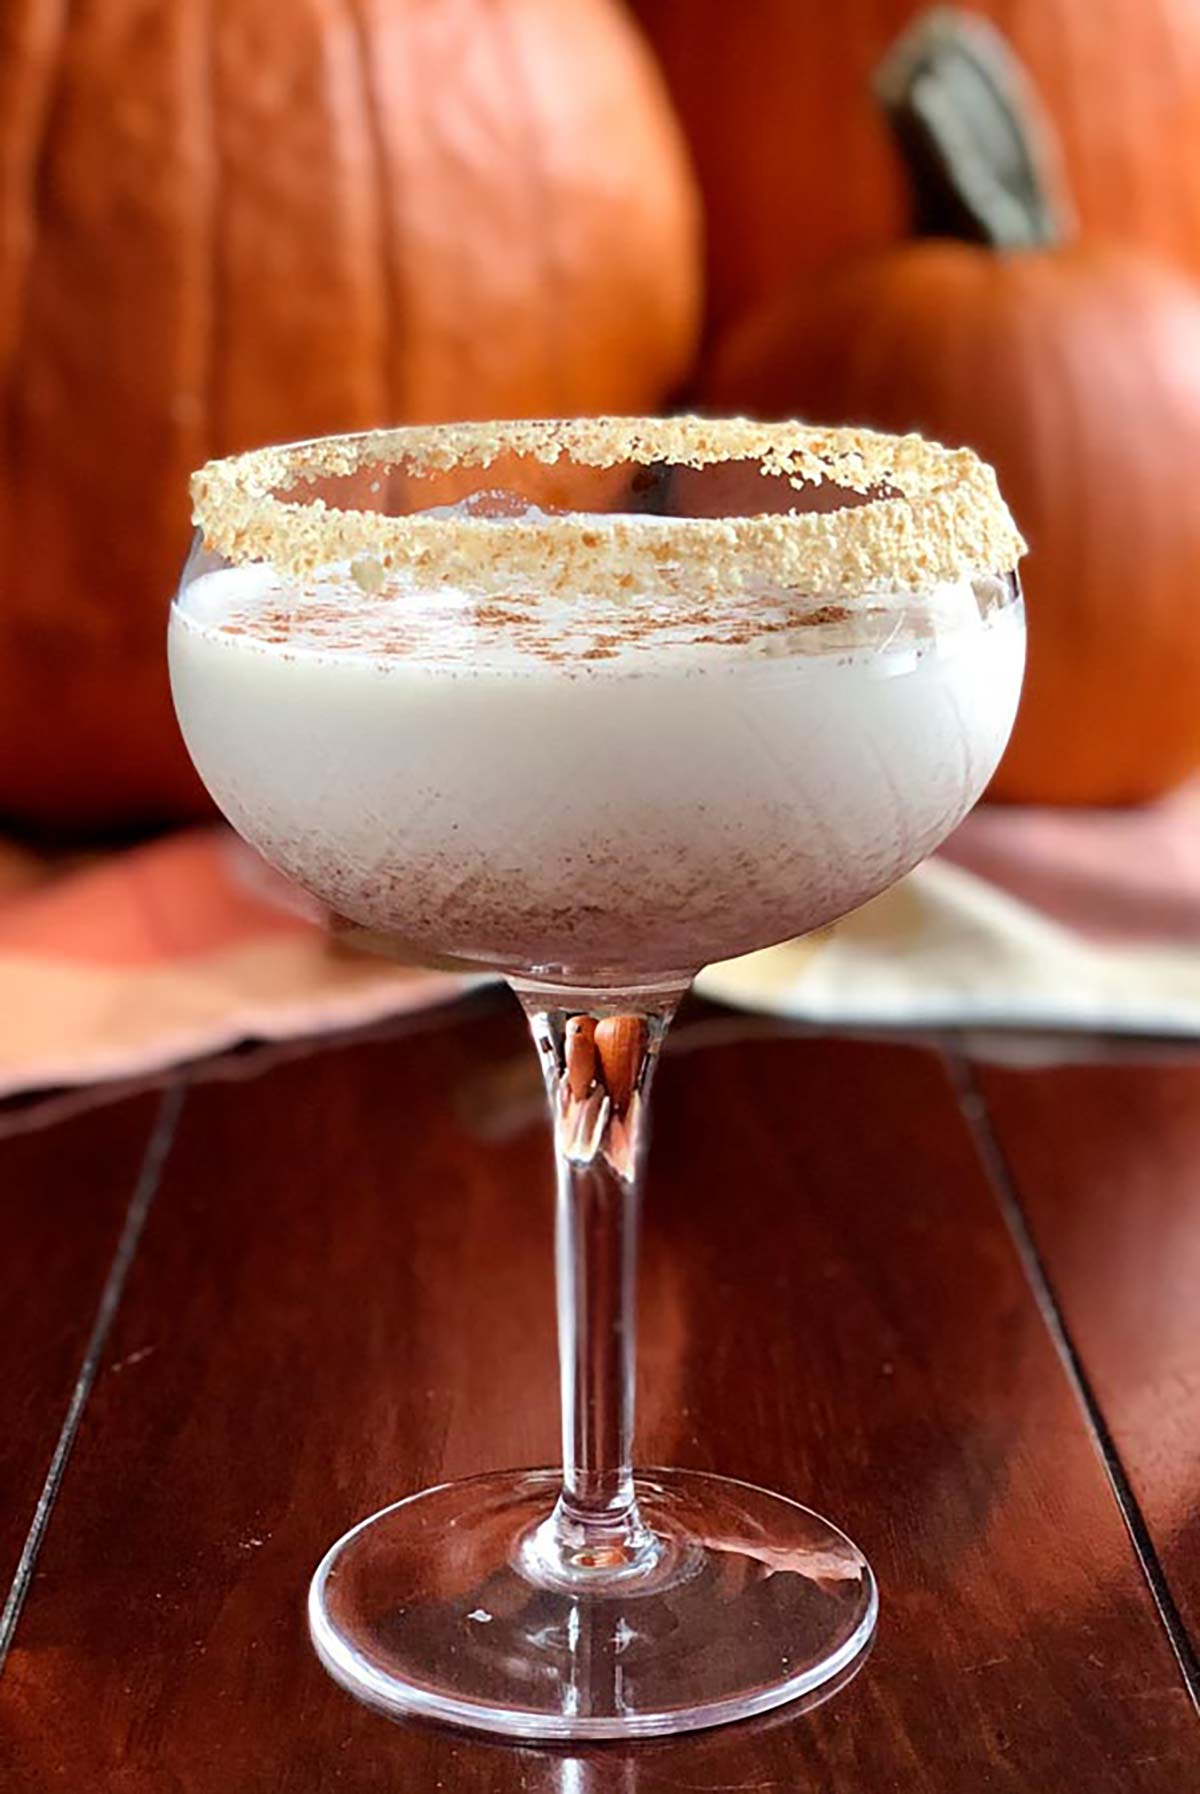 A cocktail in front of pumpkins, garnished with crumbs.